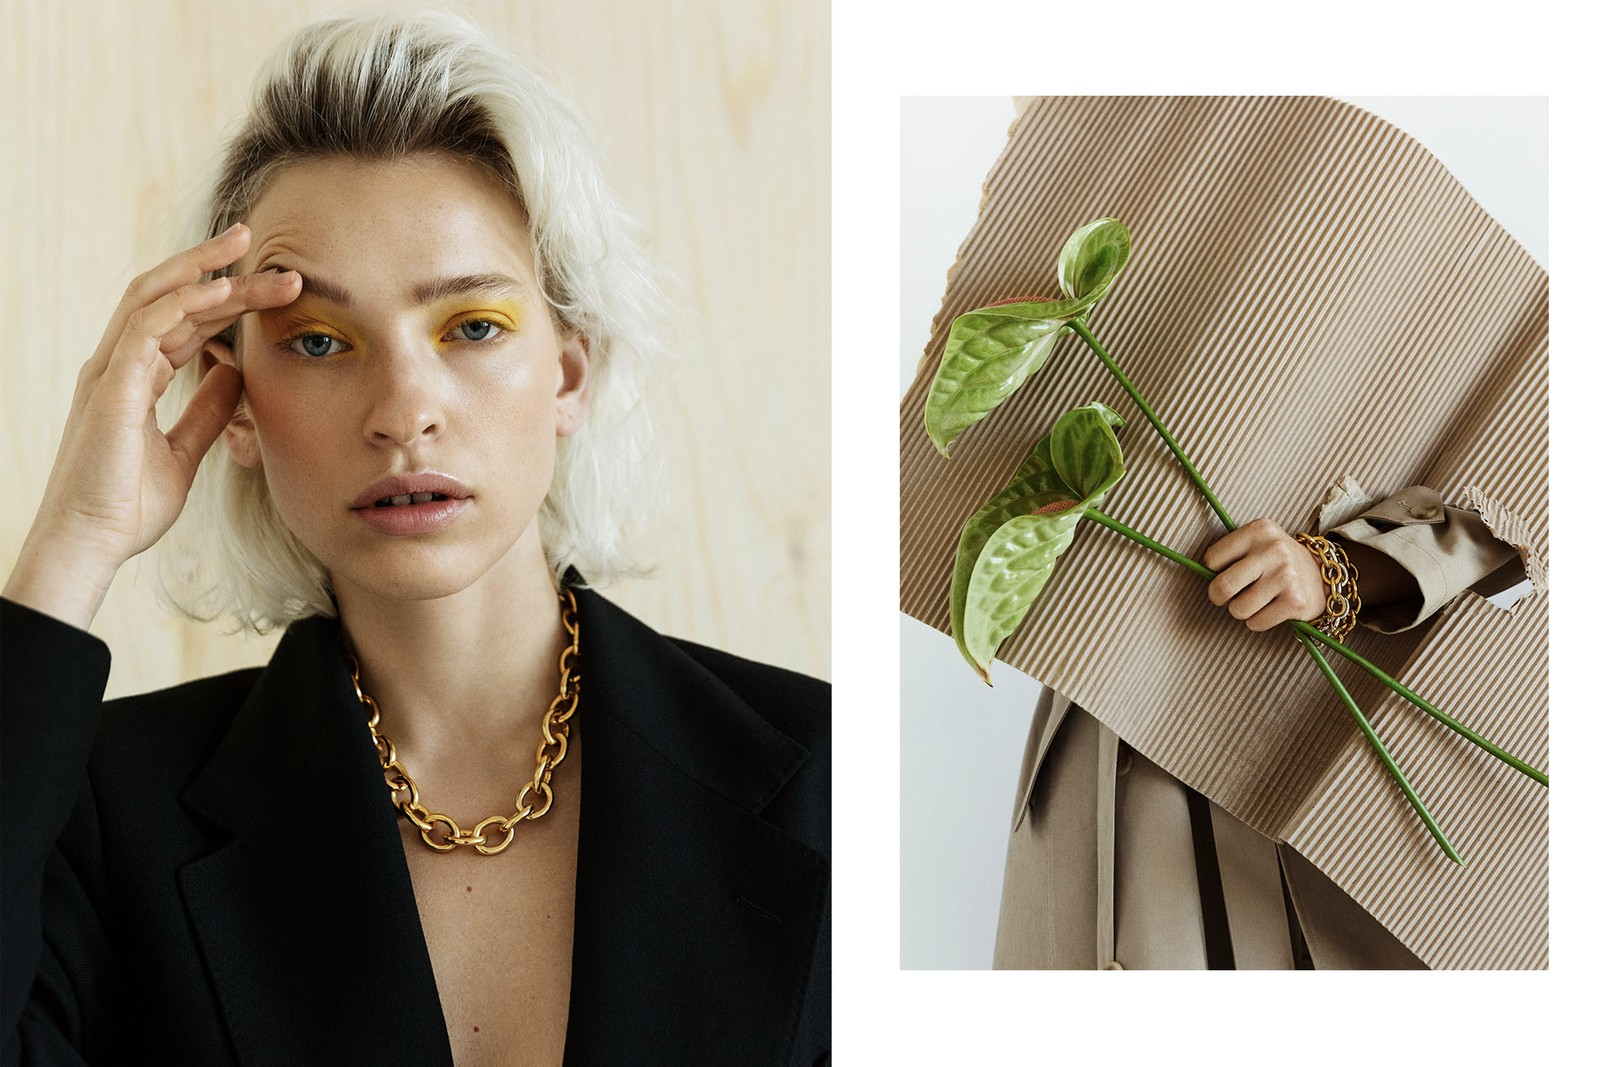 Blue Billie Swedish Jewelry Brand Chain Collection Daniela Upmark Founder Interview